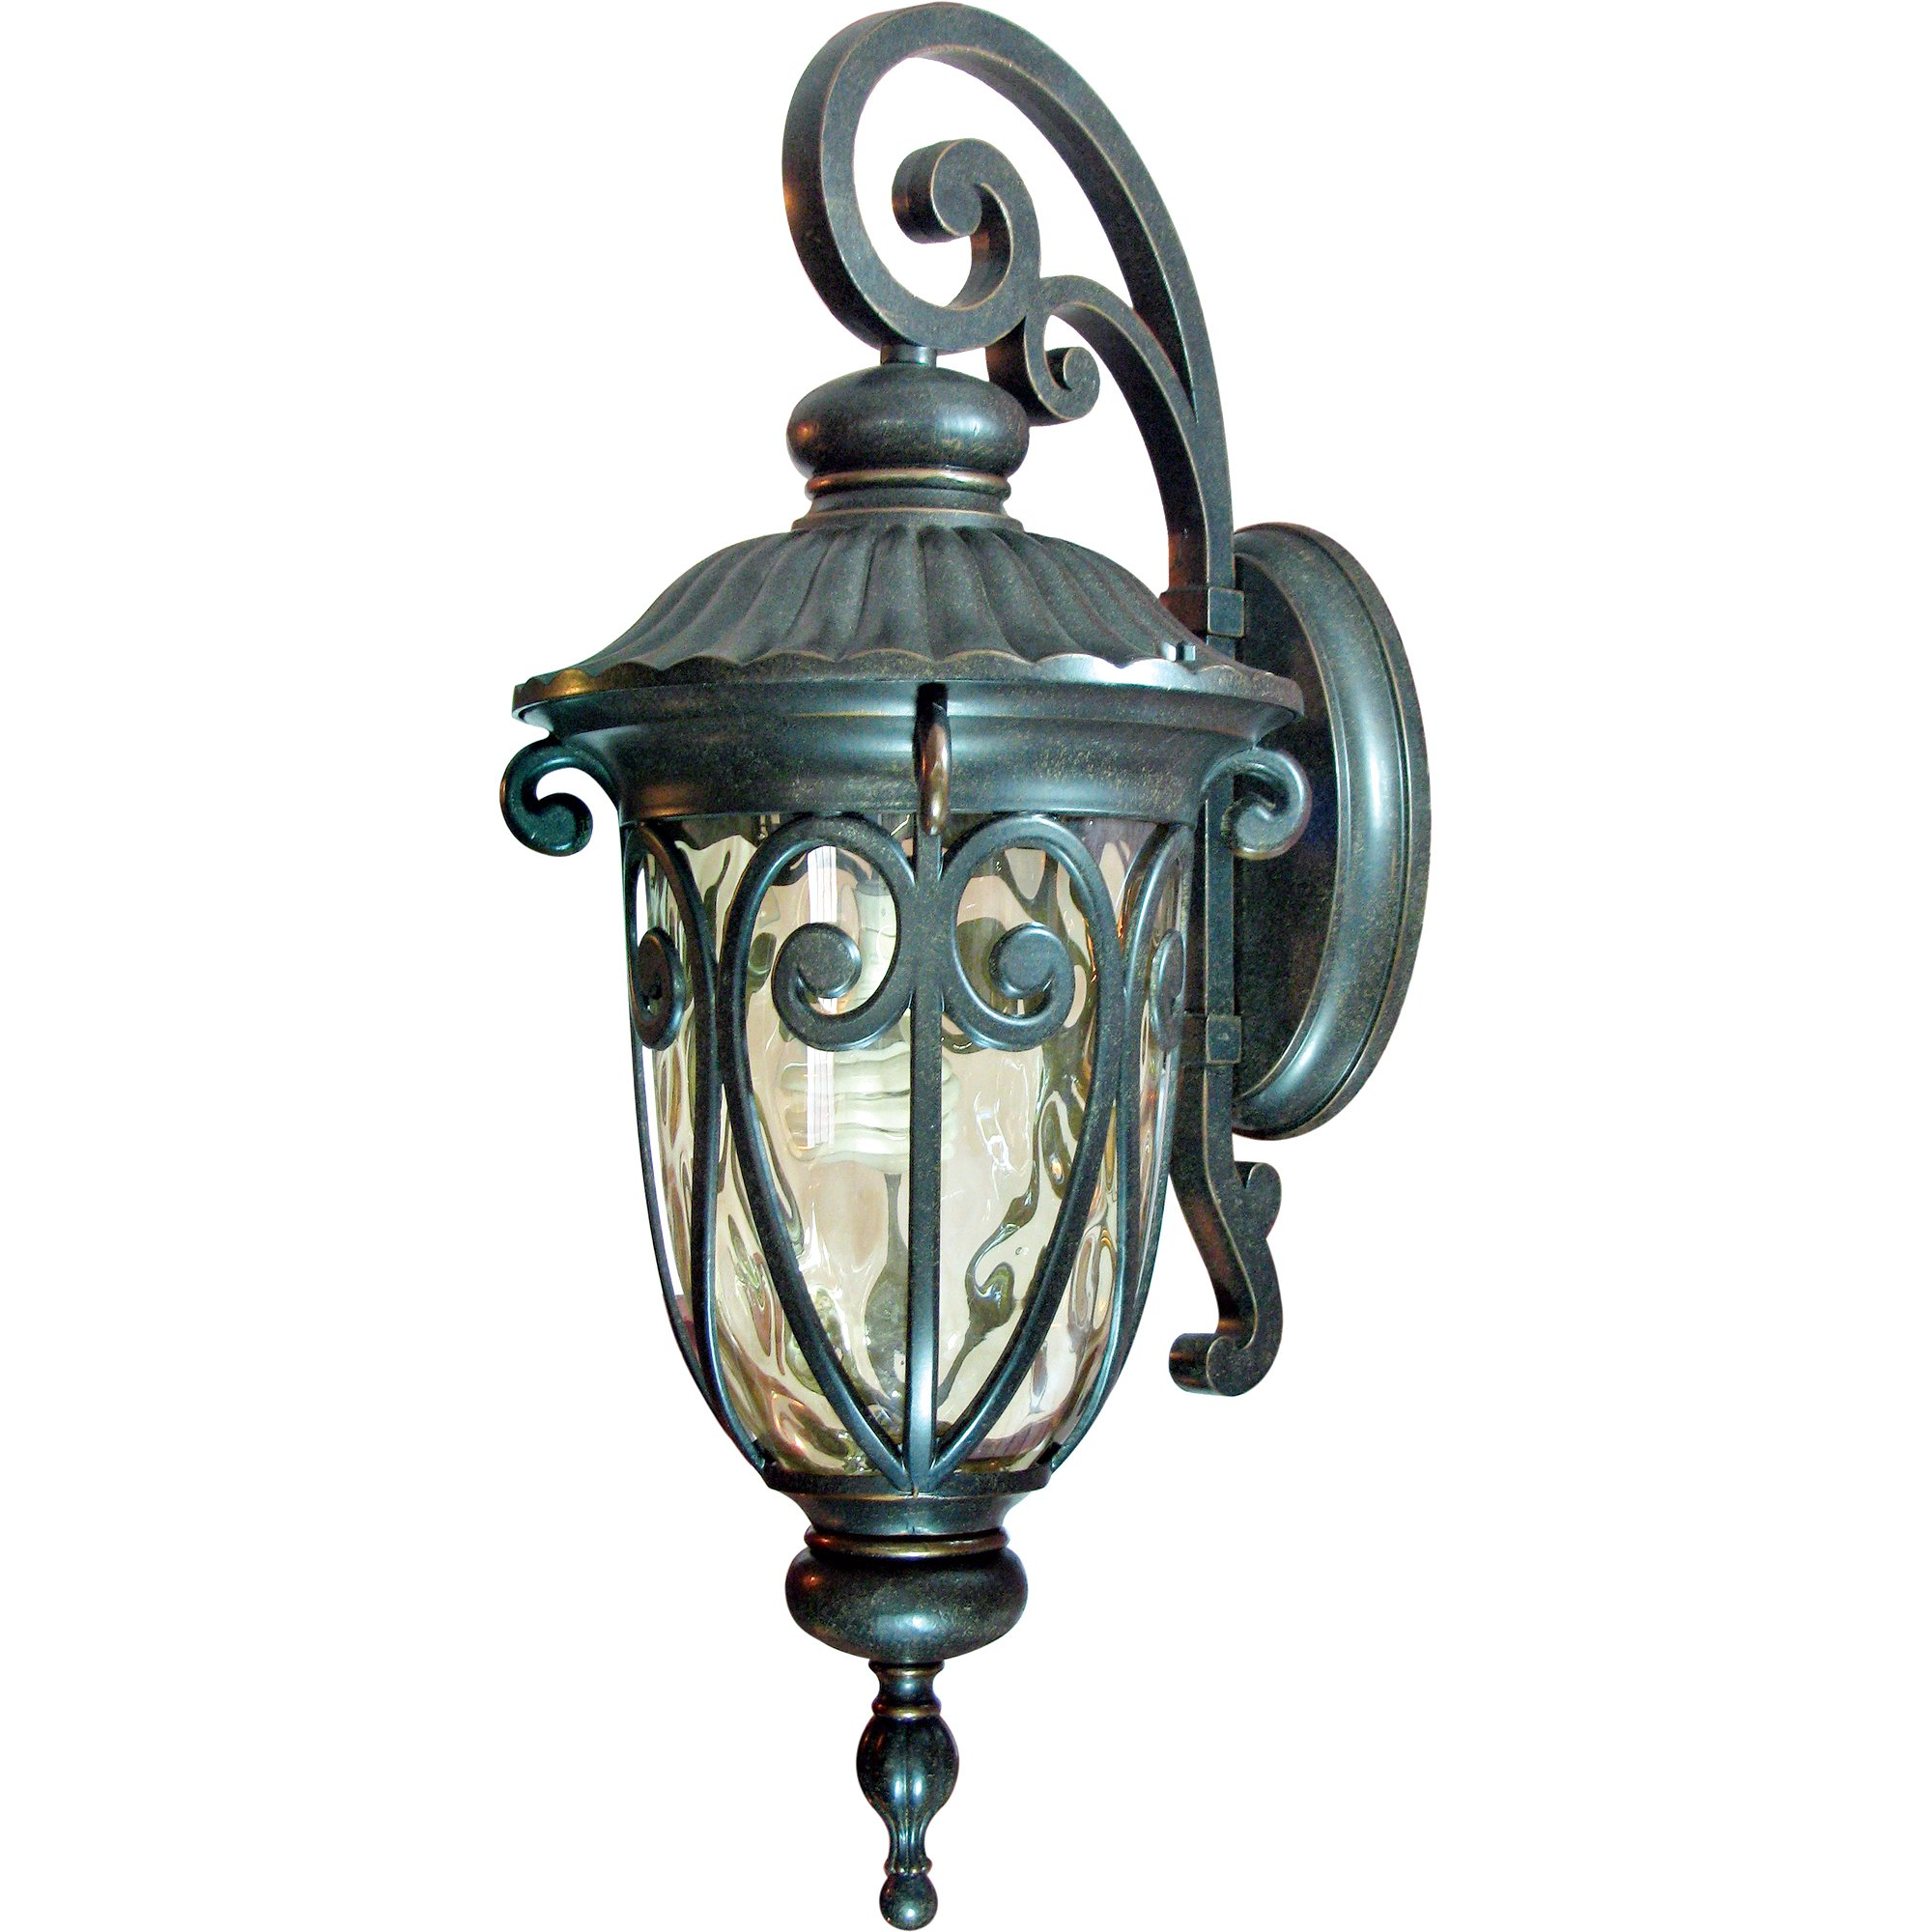 Yosemite Home Decor FL519LDORB Viviana 1-Light Fluorescent Exterior Wall Sconce with Gold Stone Shade by Yosemite Home Decor